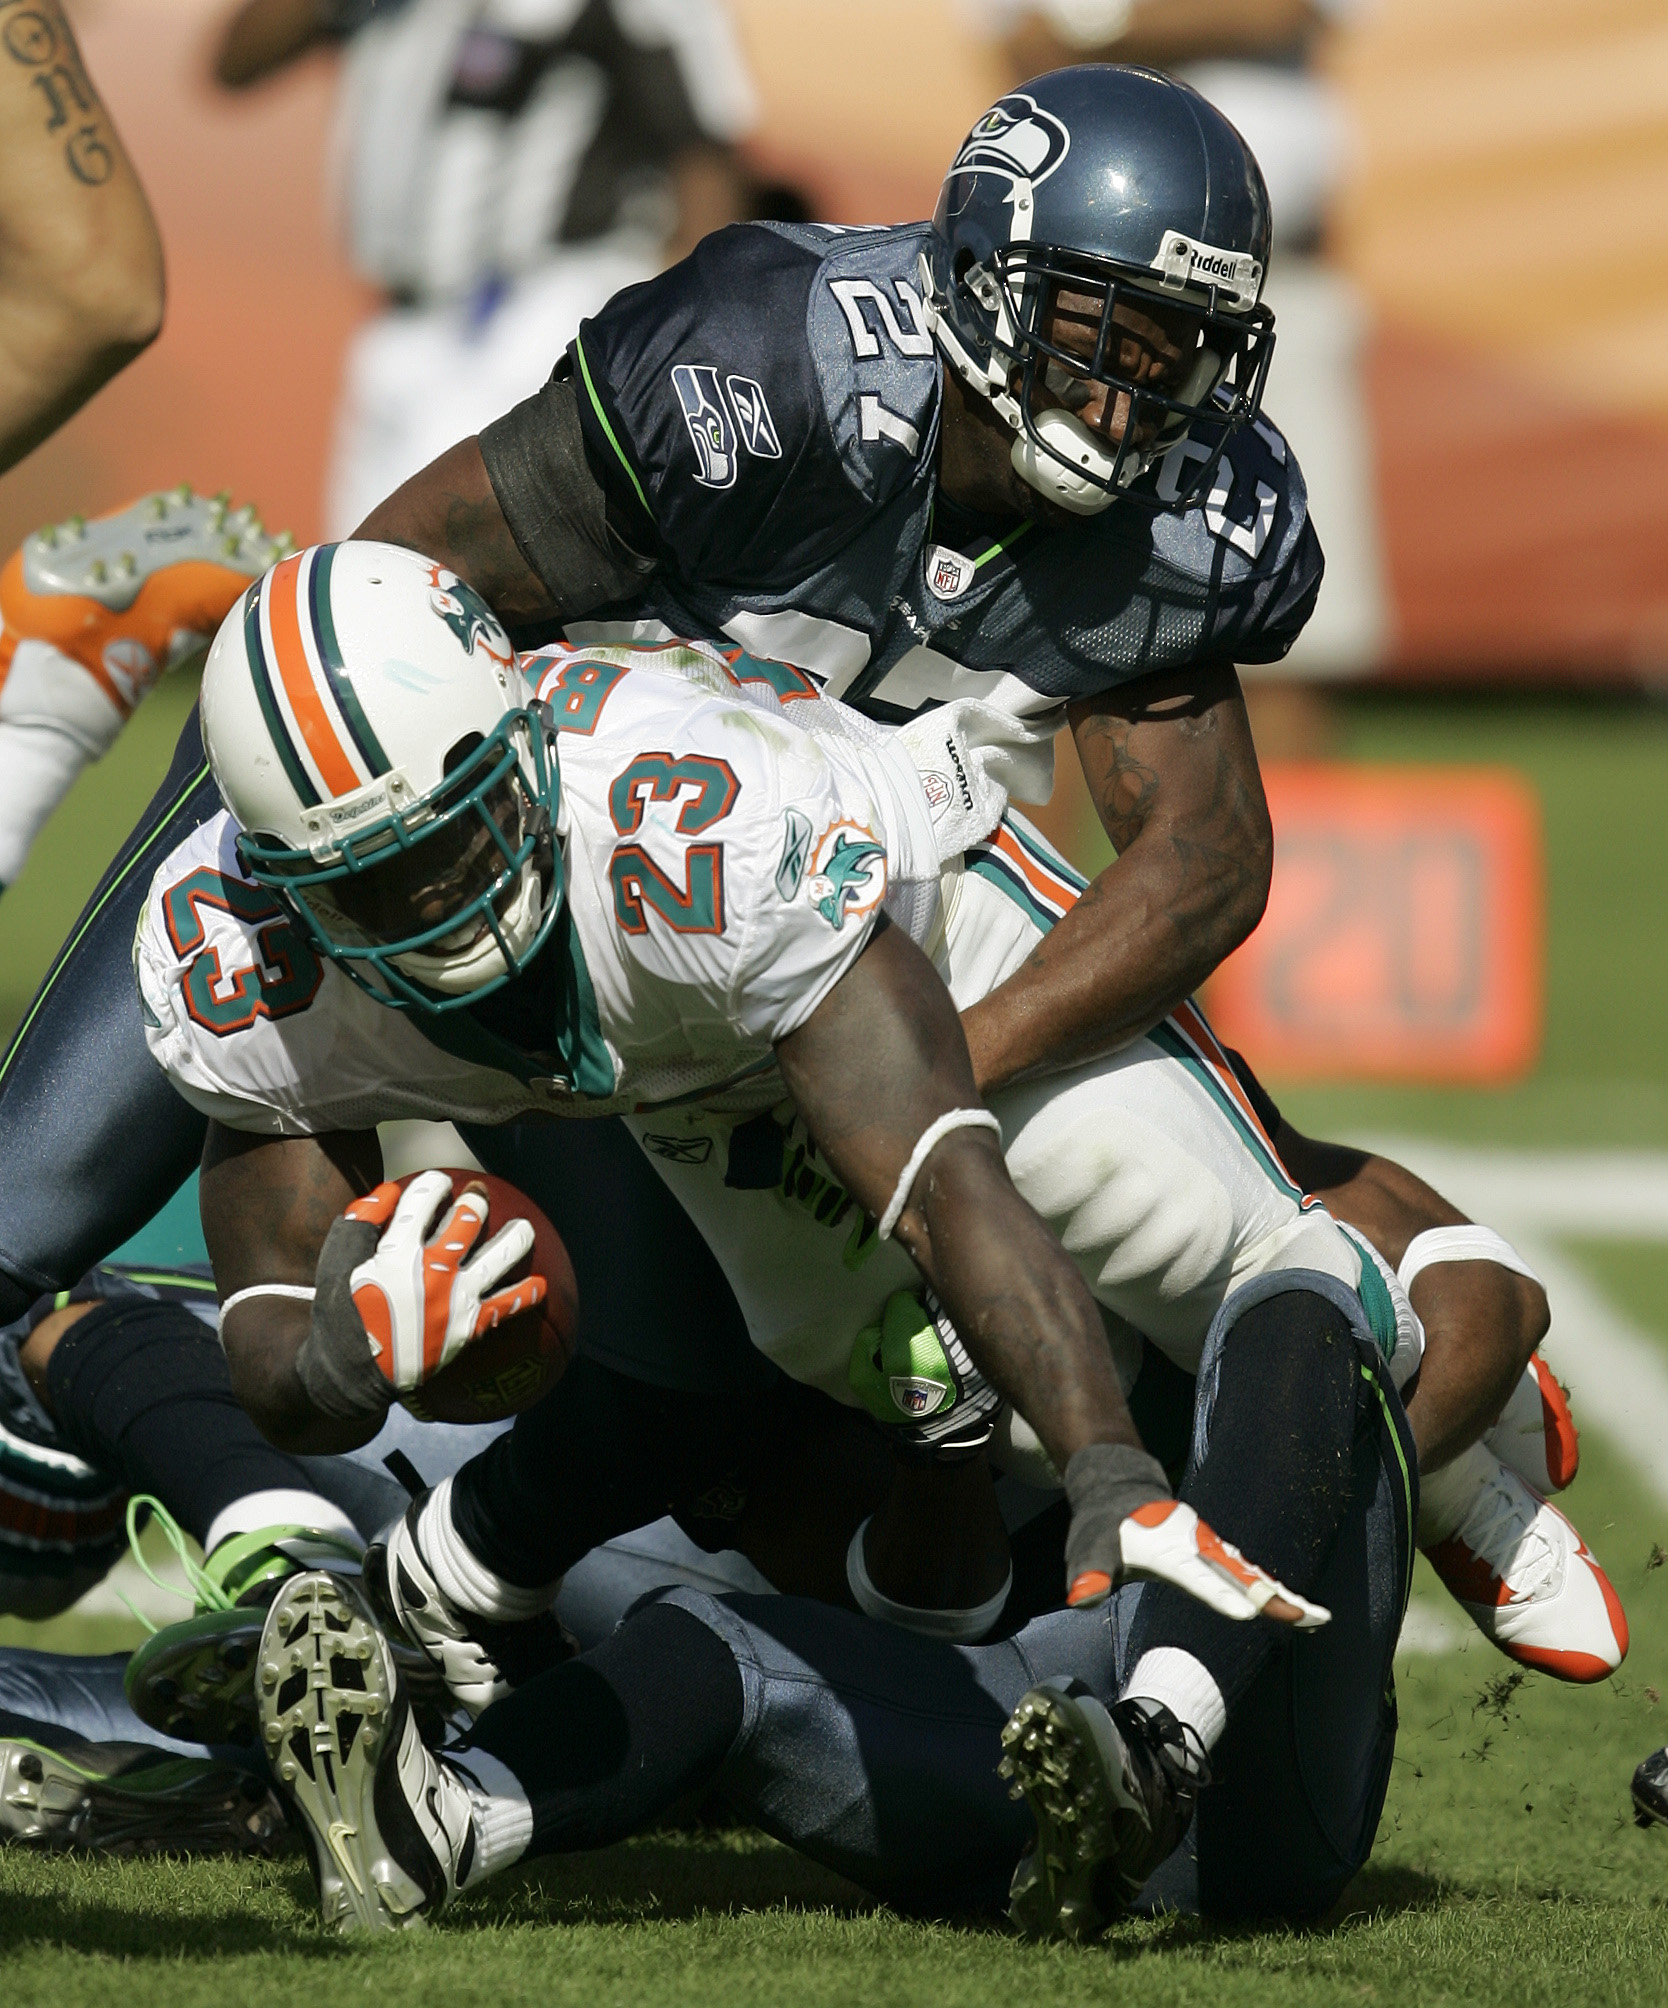 Dolphins Running Back Ronnie Brown 23 Is Taken Down By The Seahawks Jordan